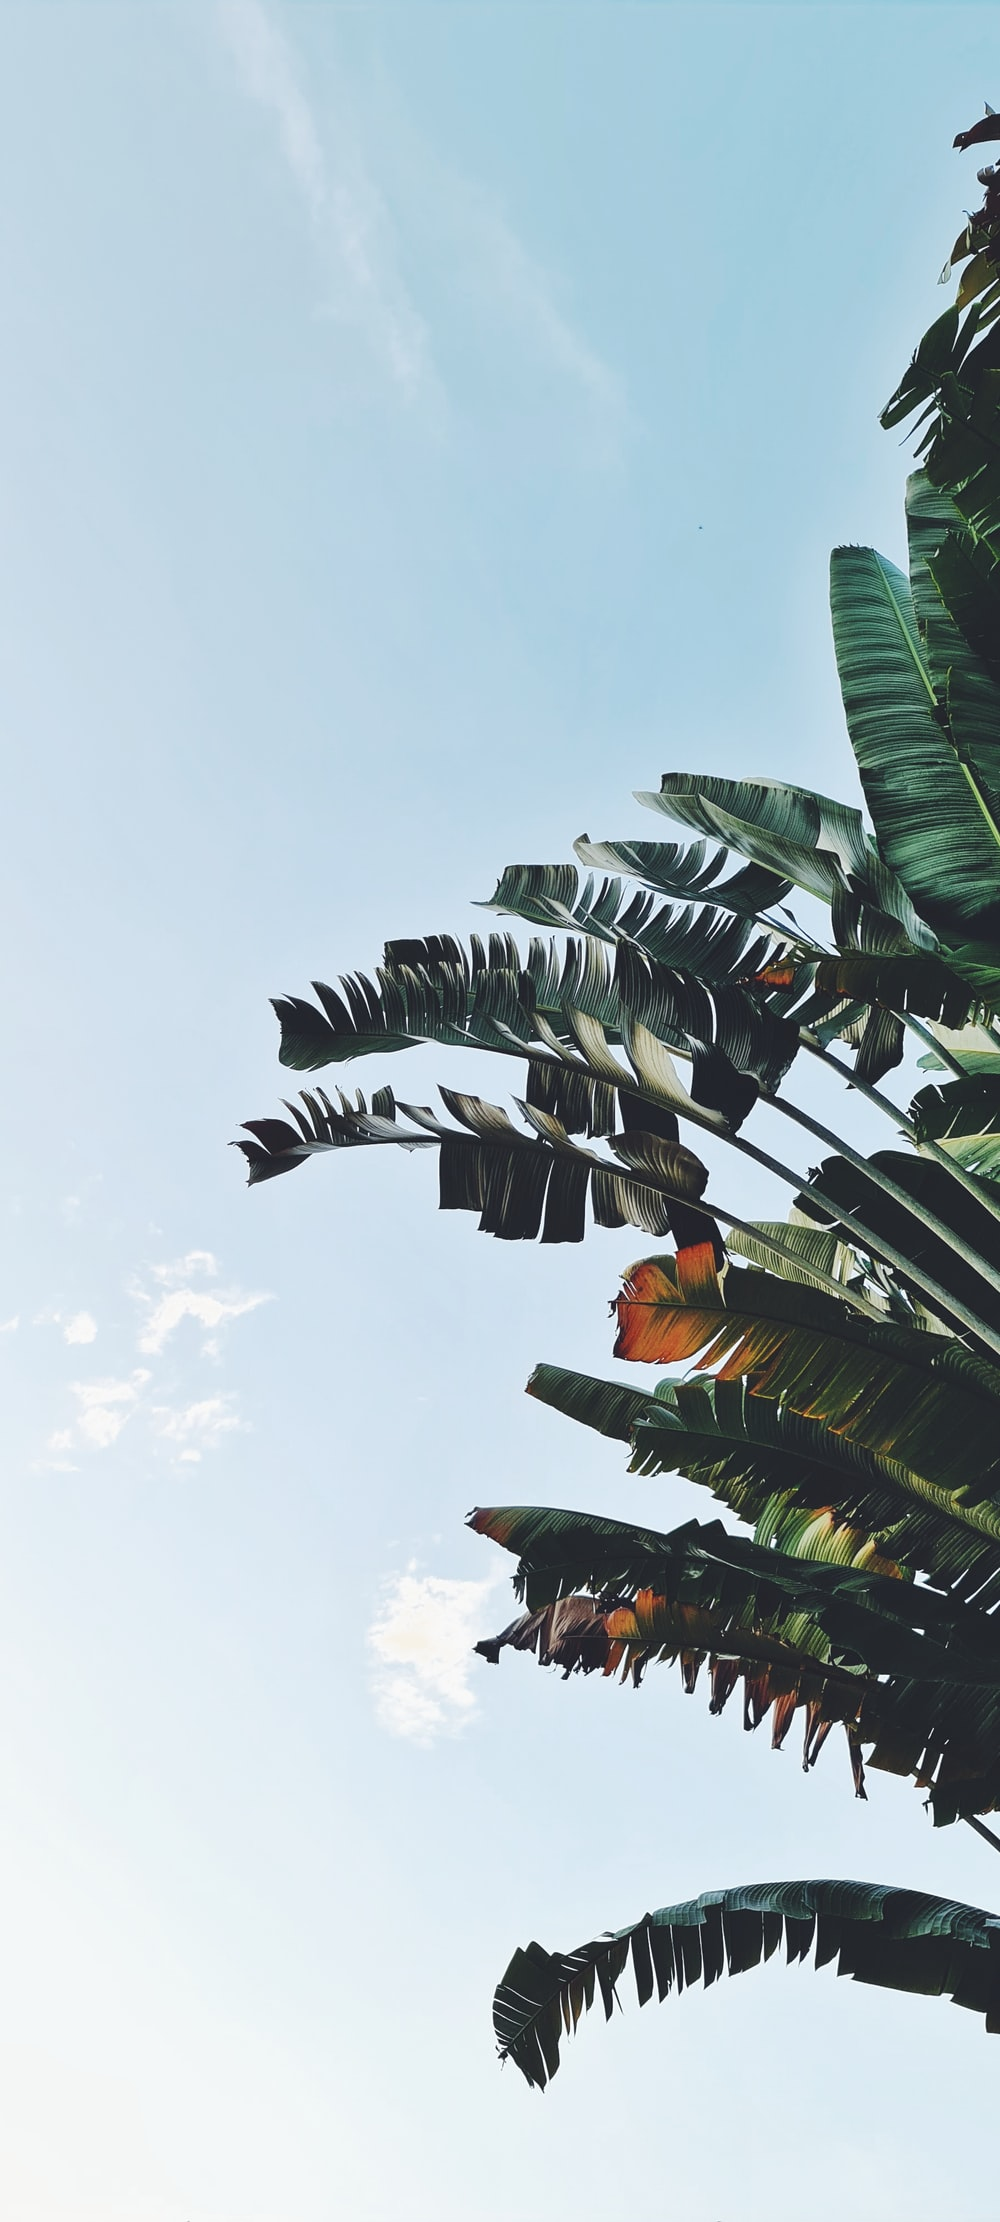 green banana tree under white clouds during daytime